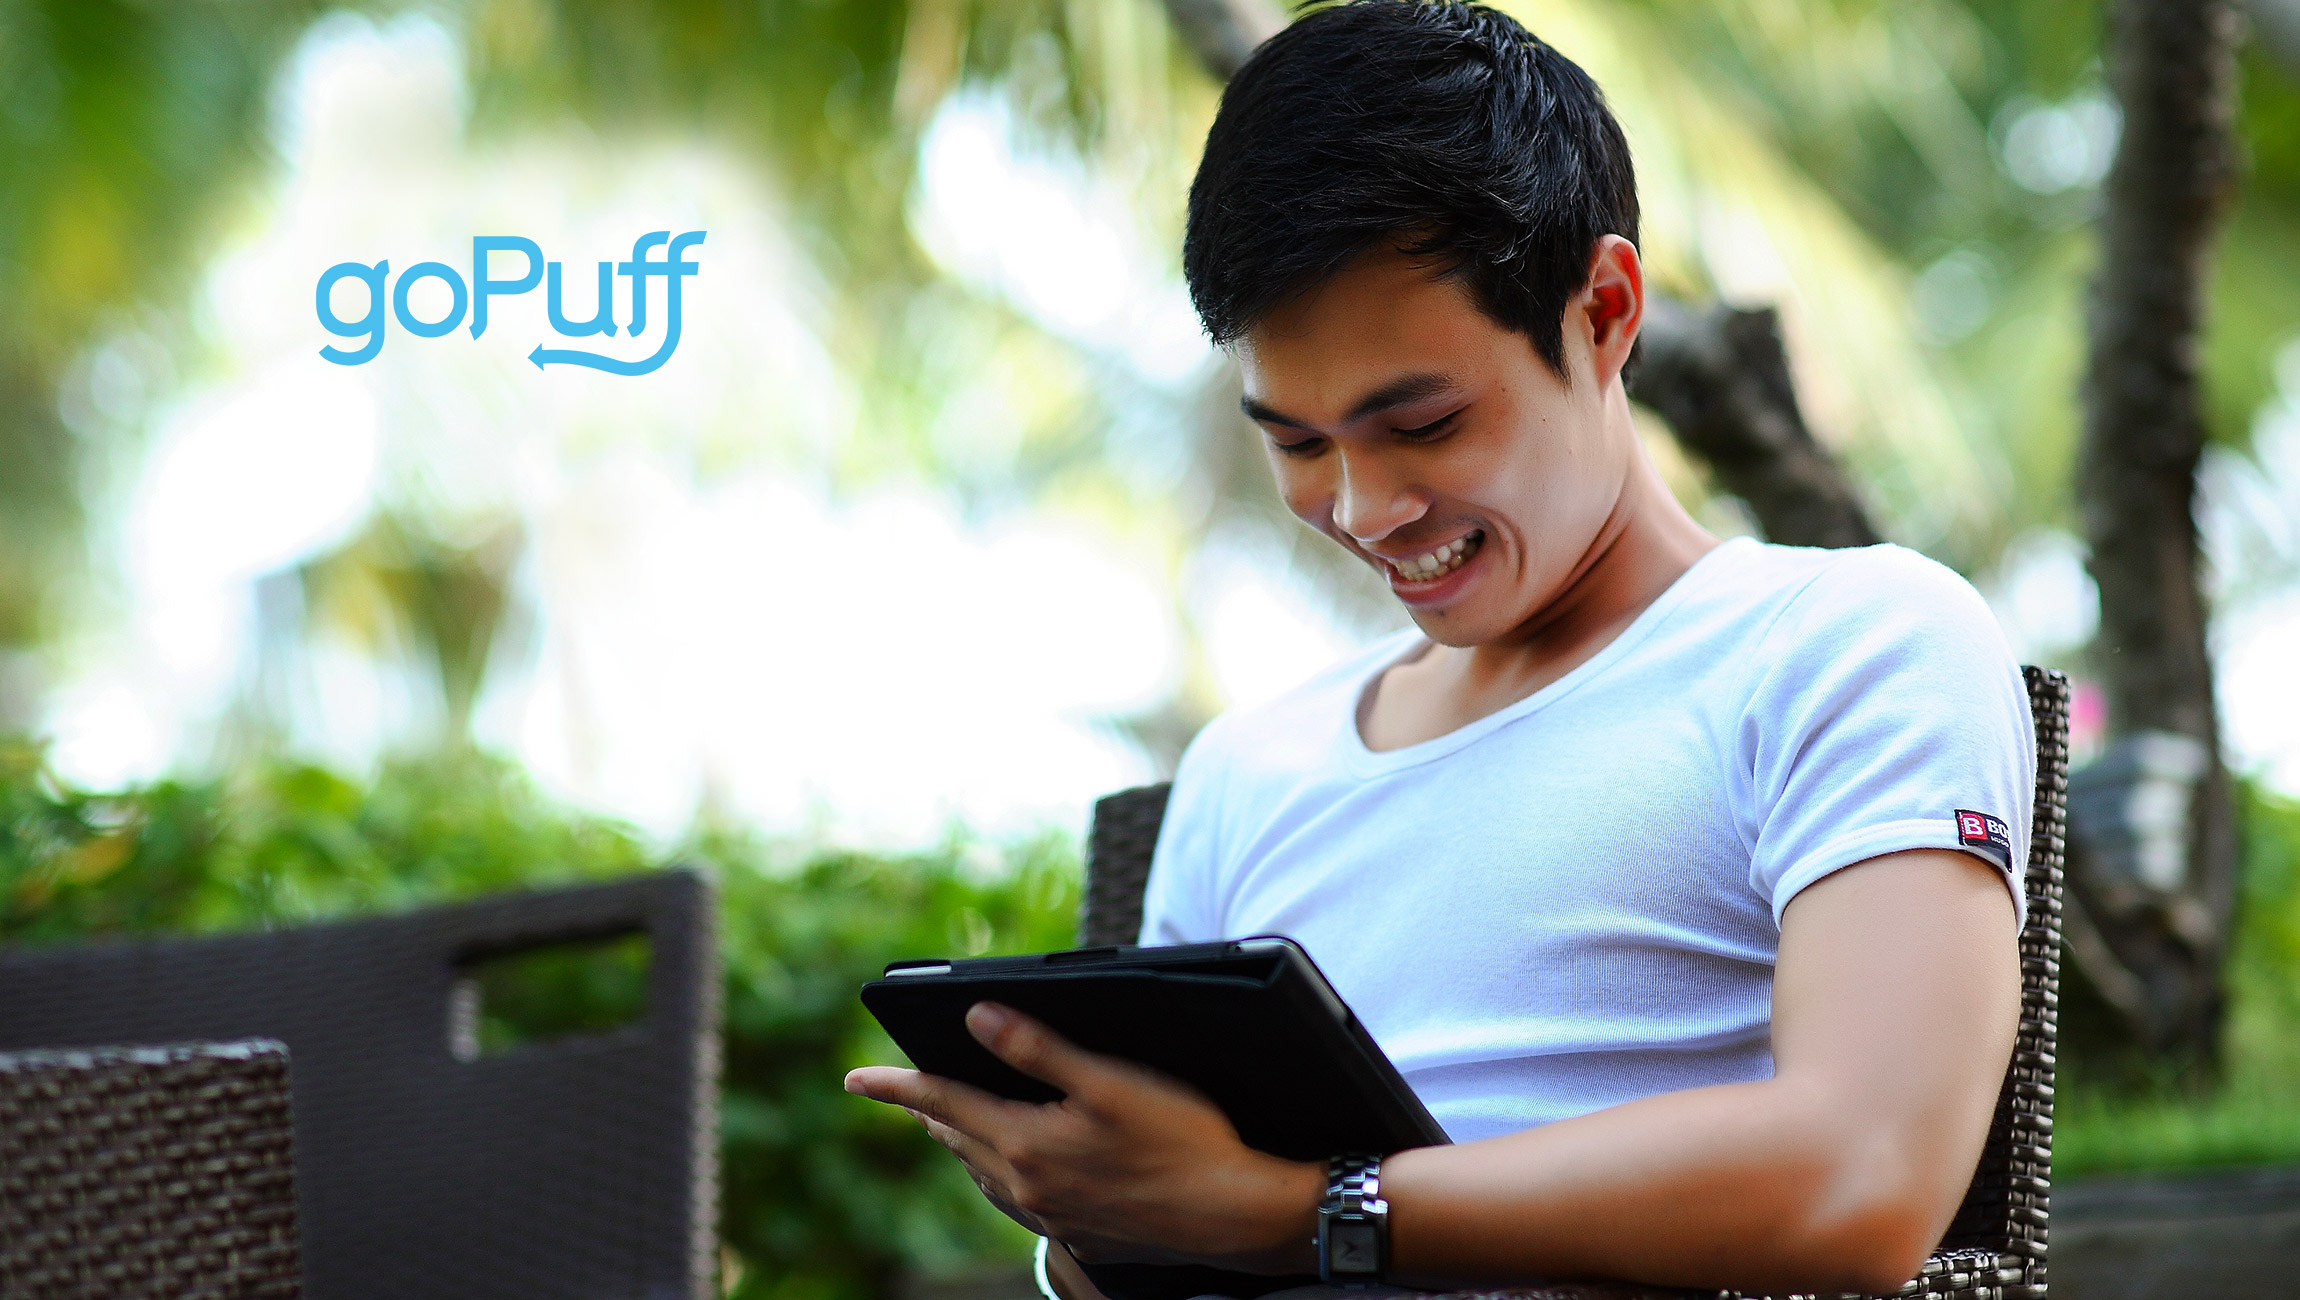 goPuff Tallies up How Football Fans Spent Their Time Watching The Big Game